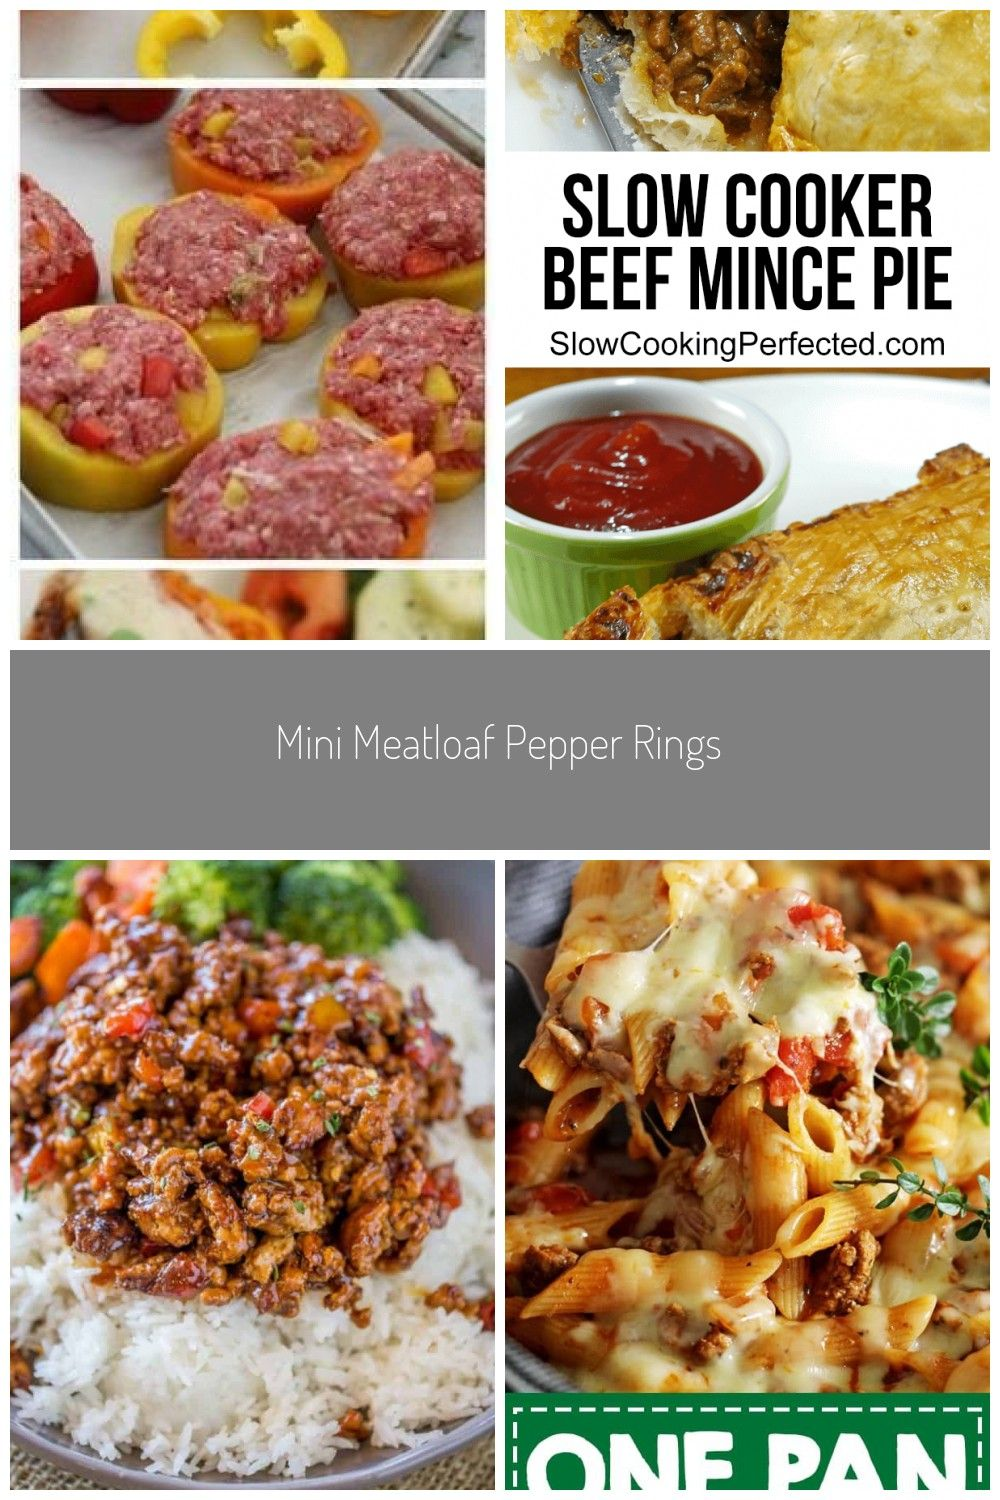 Mini Meatloaf Pepper Rings. Replace with extra lean ground ...